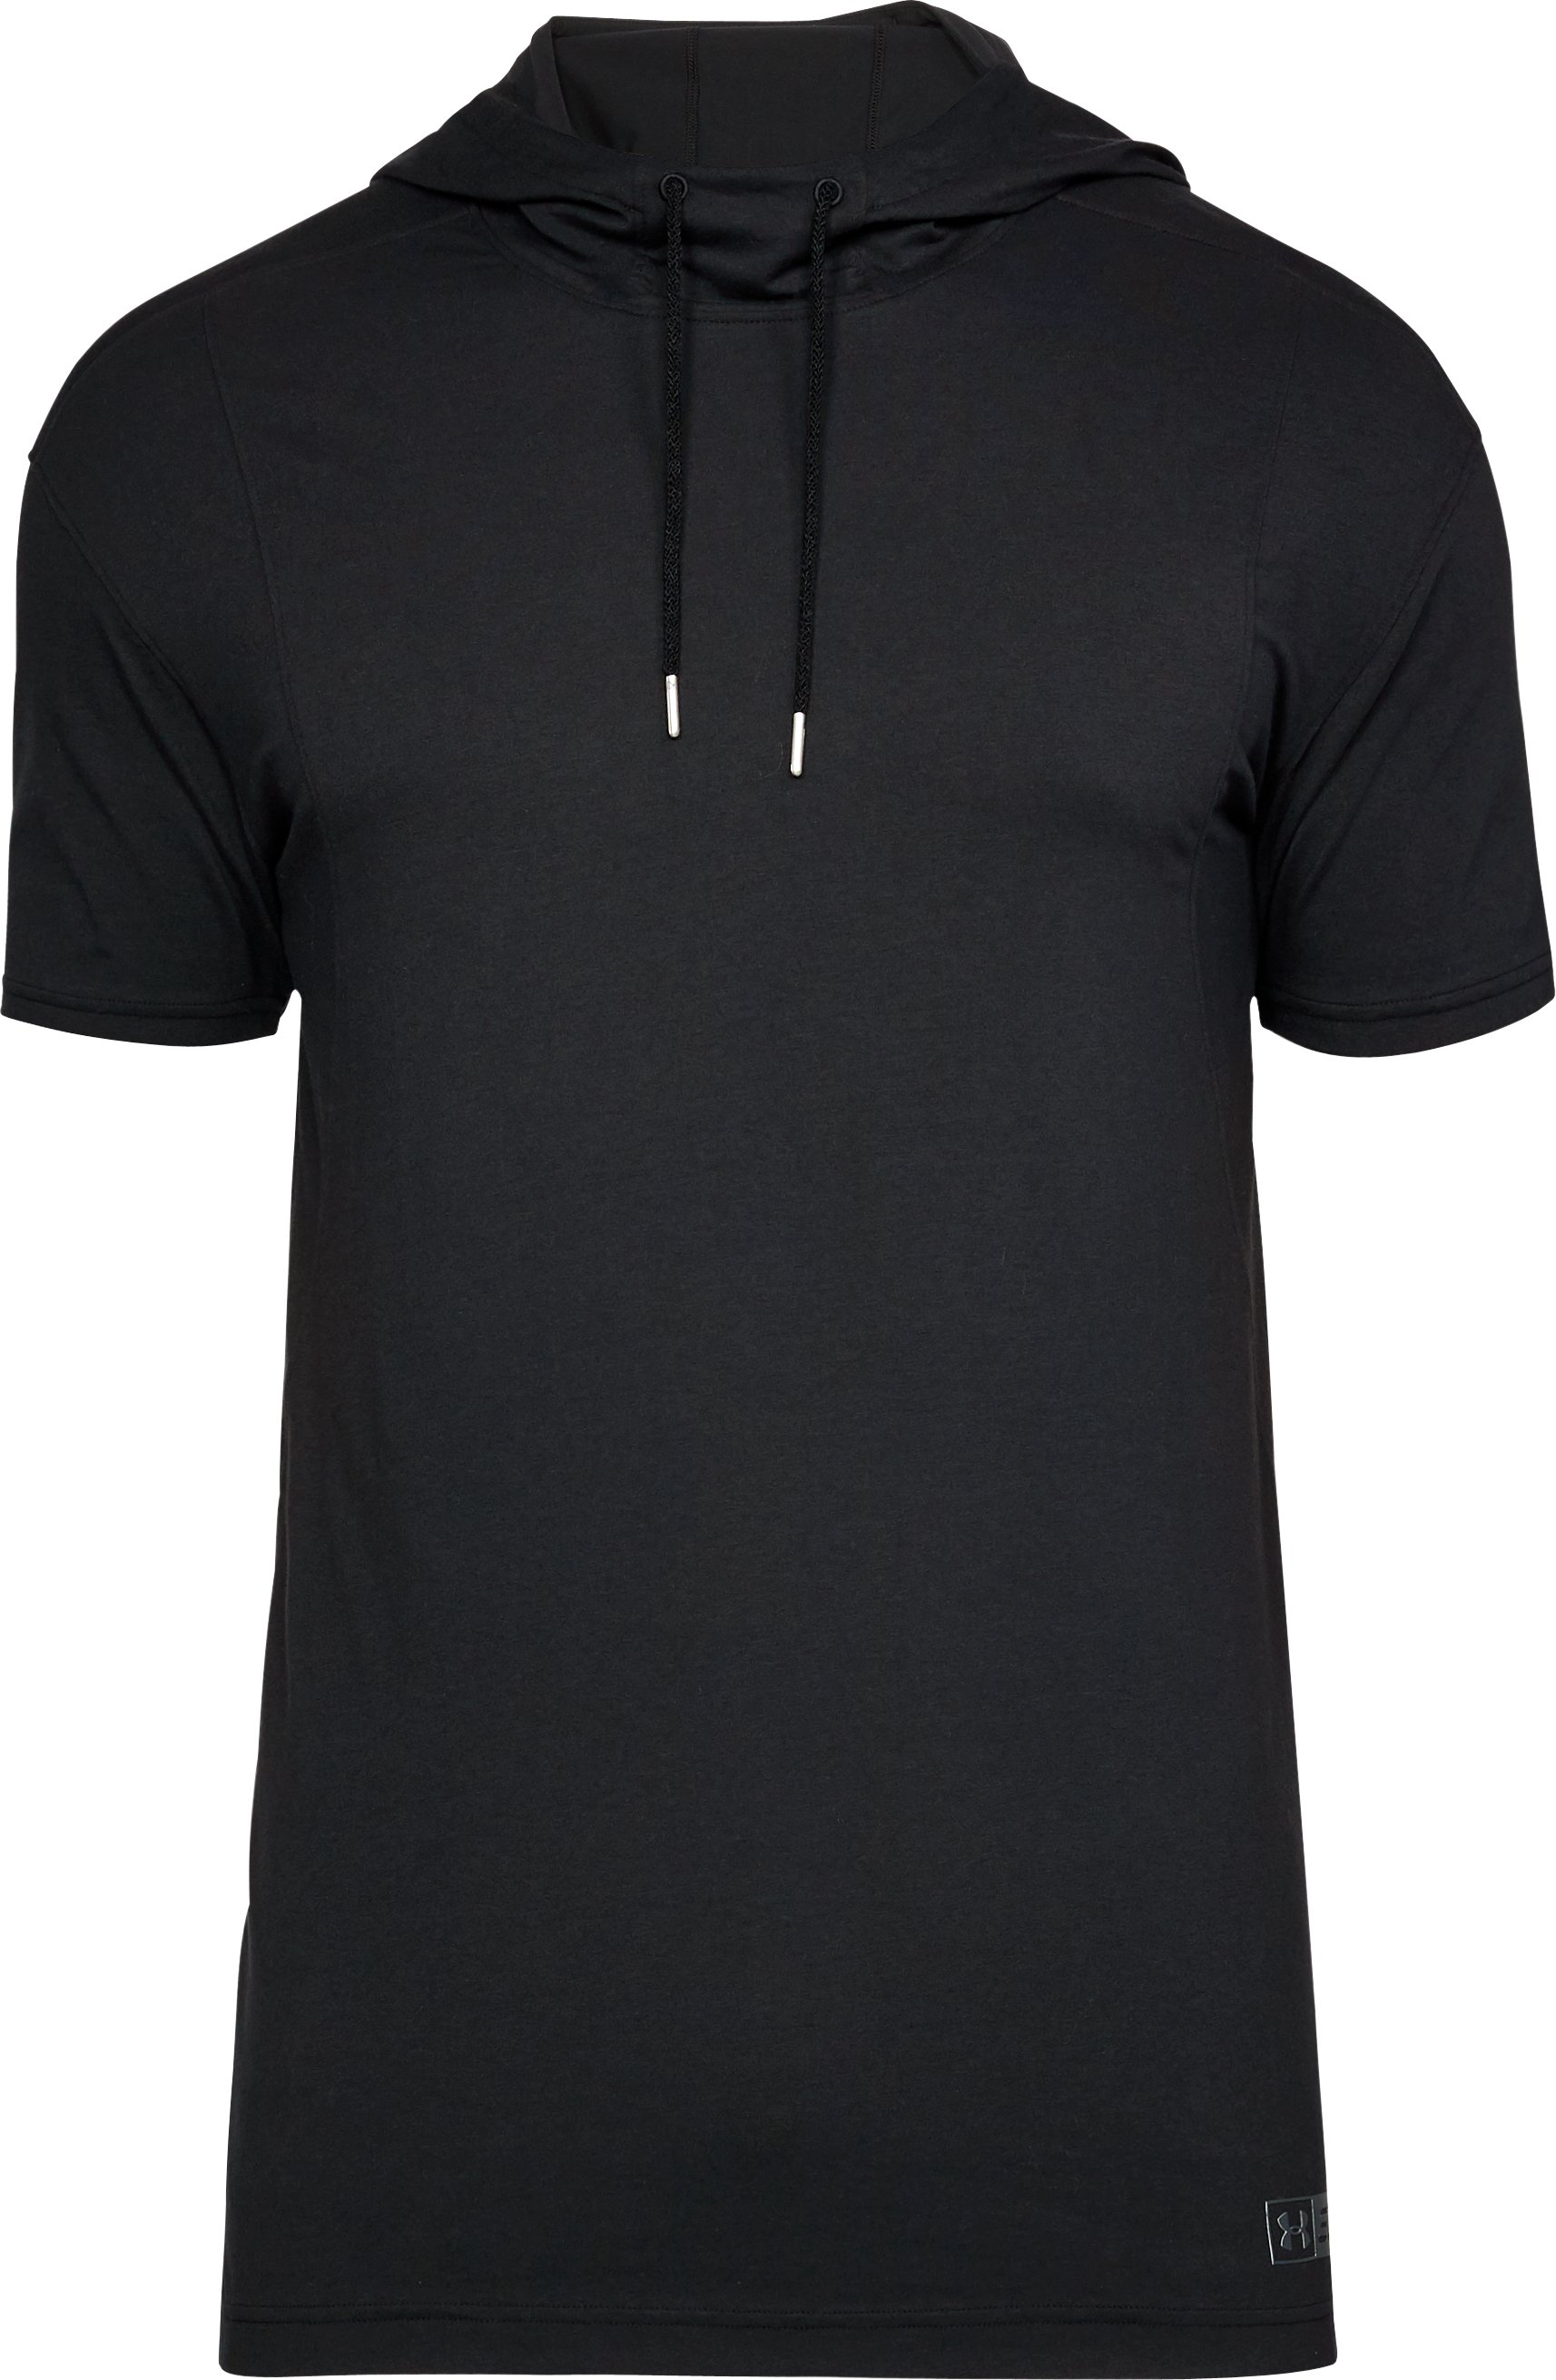 Men's SC30 Short Sleeve Hooded T-Shirt, Black ,